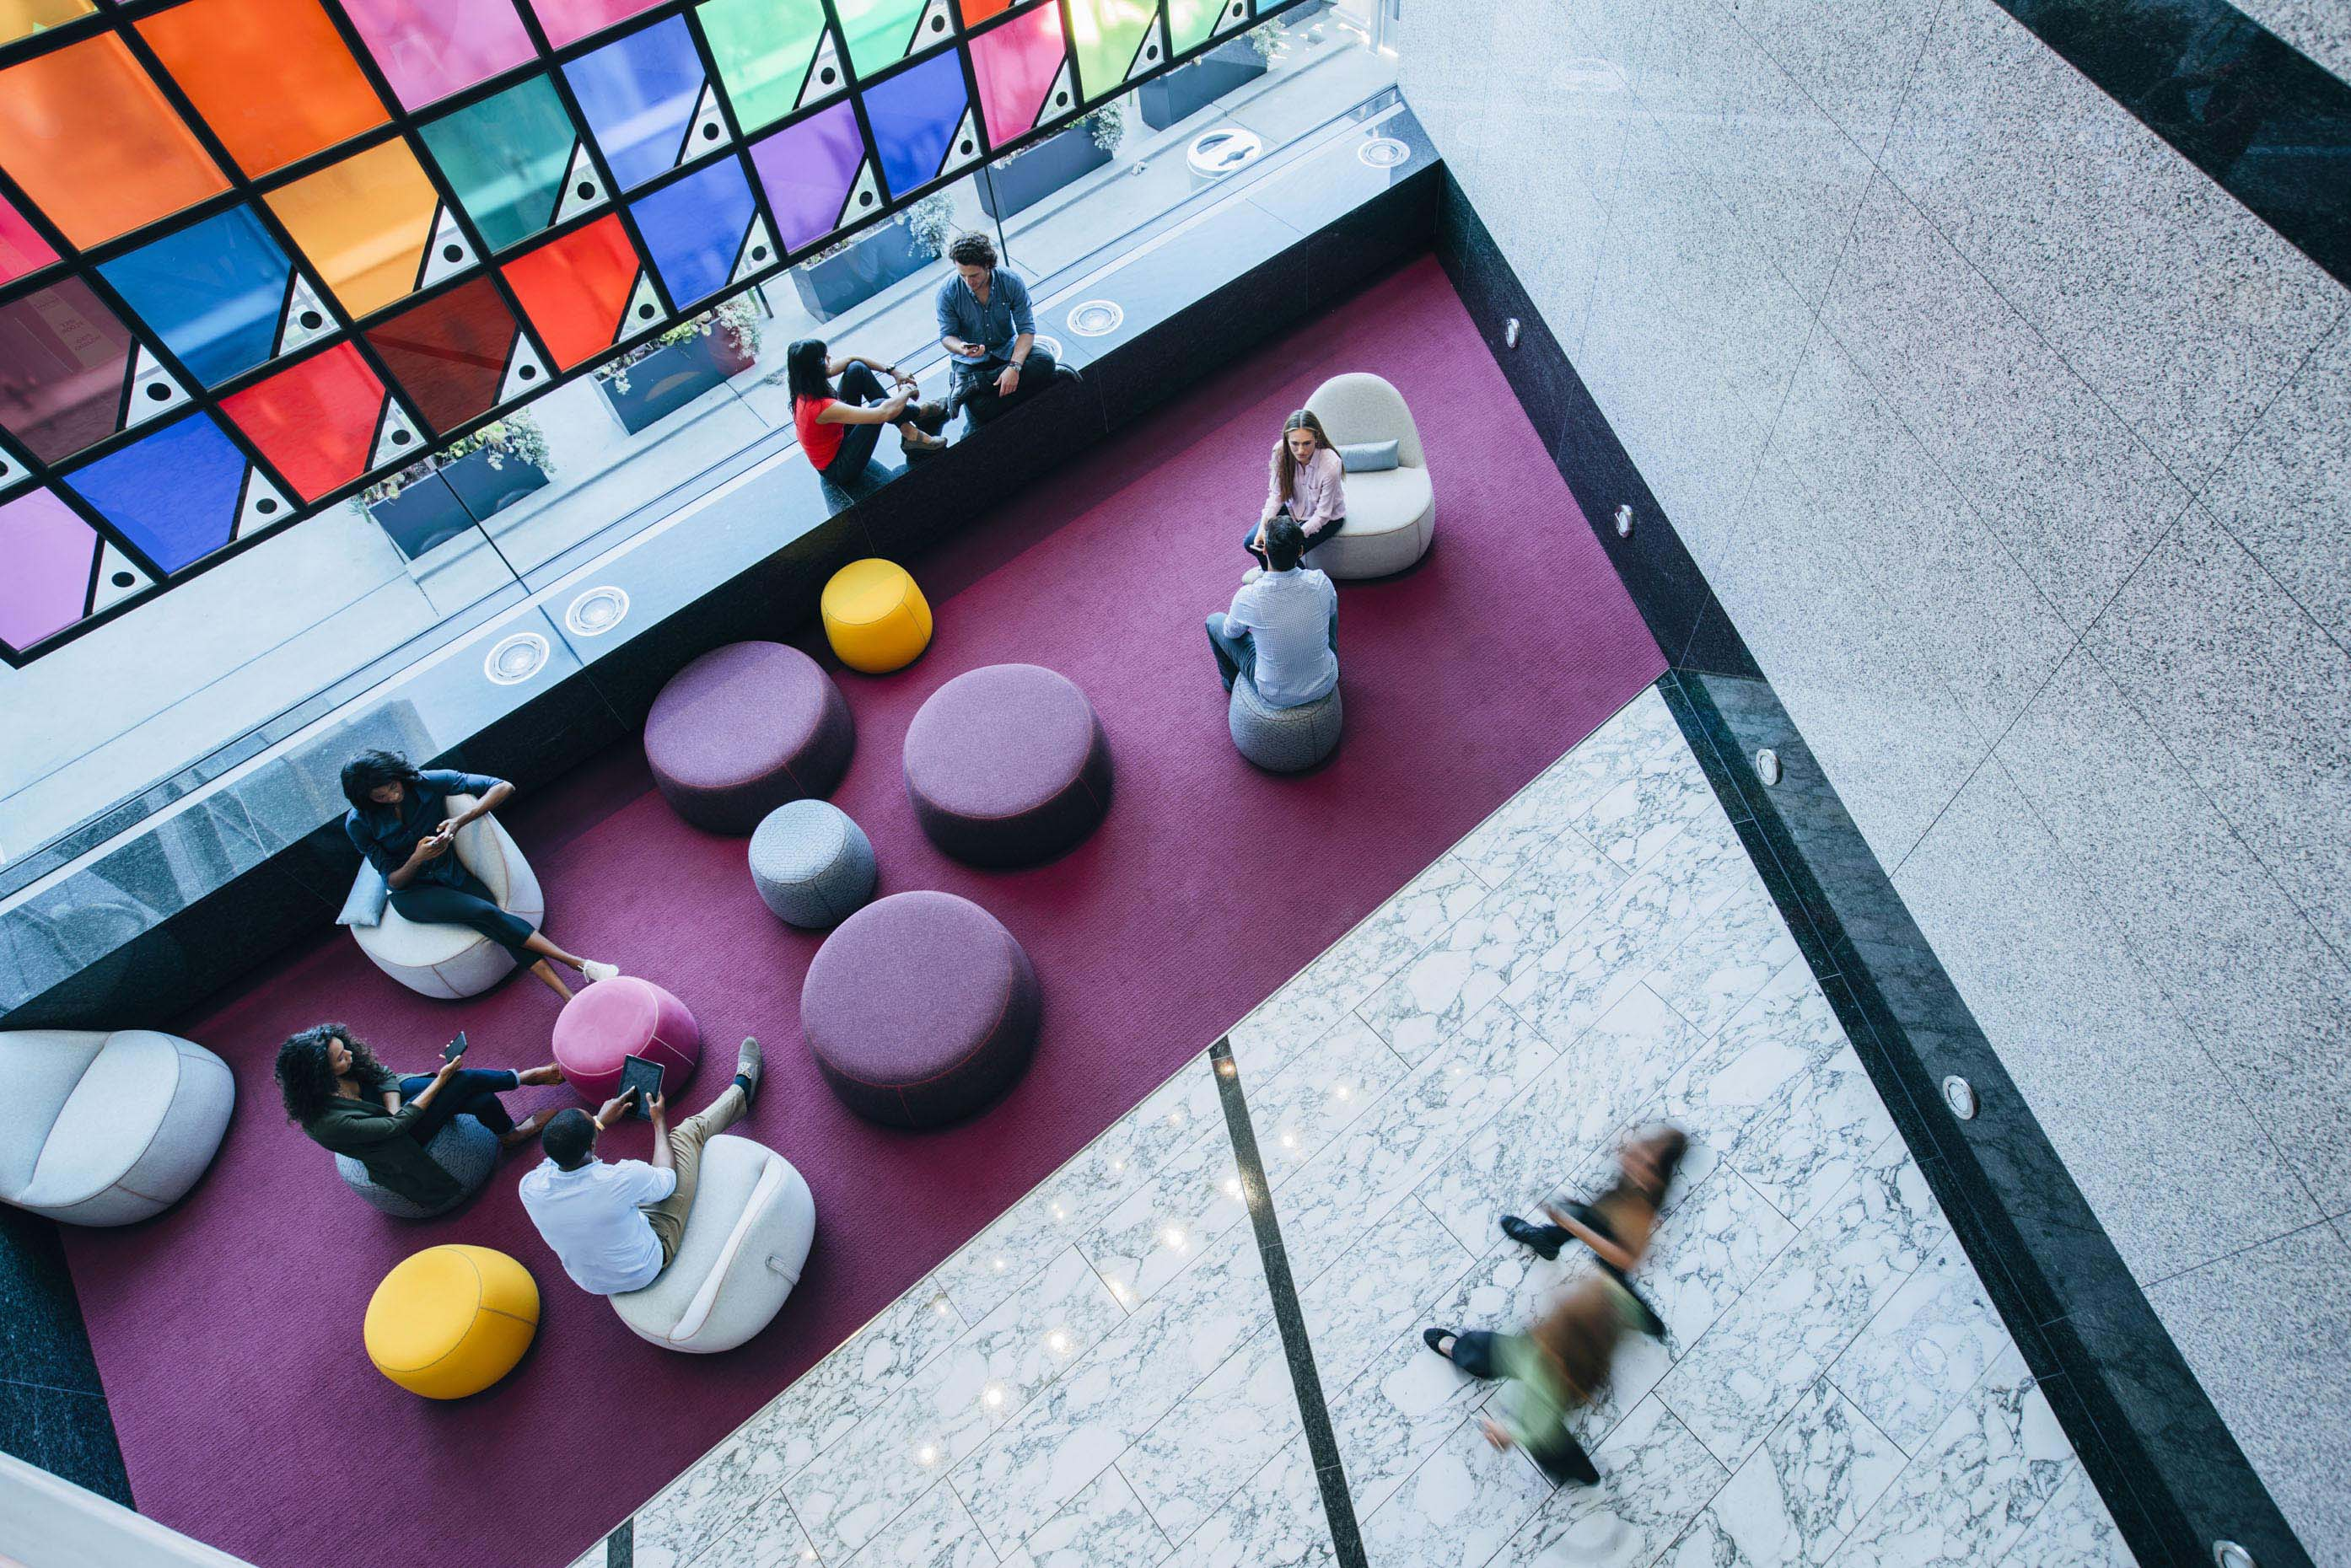 overhead-view-modern-bright-colorful-office-lobby-Inti-St-Clair-is201707224056